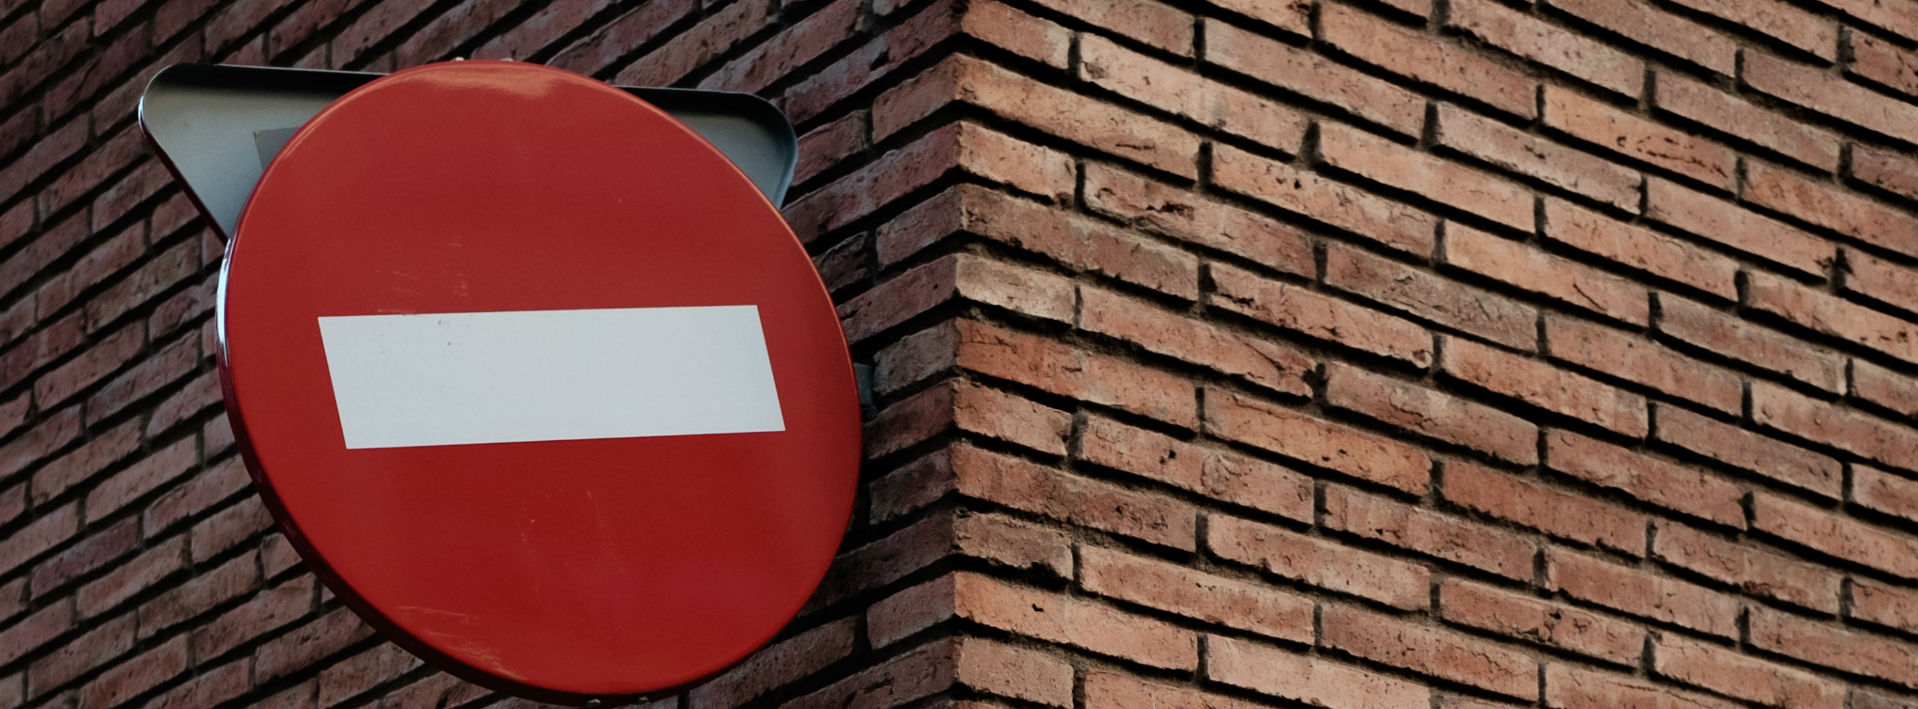 A do not enter sign against the corner of a brick wall- negative prefixes